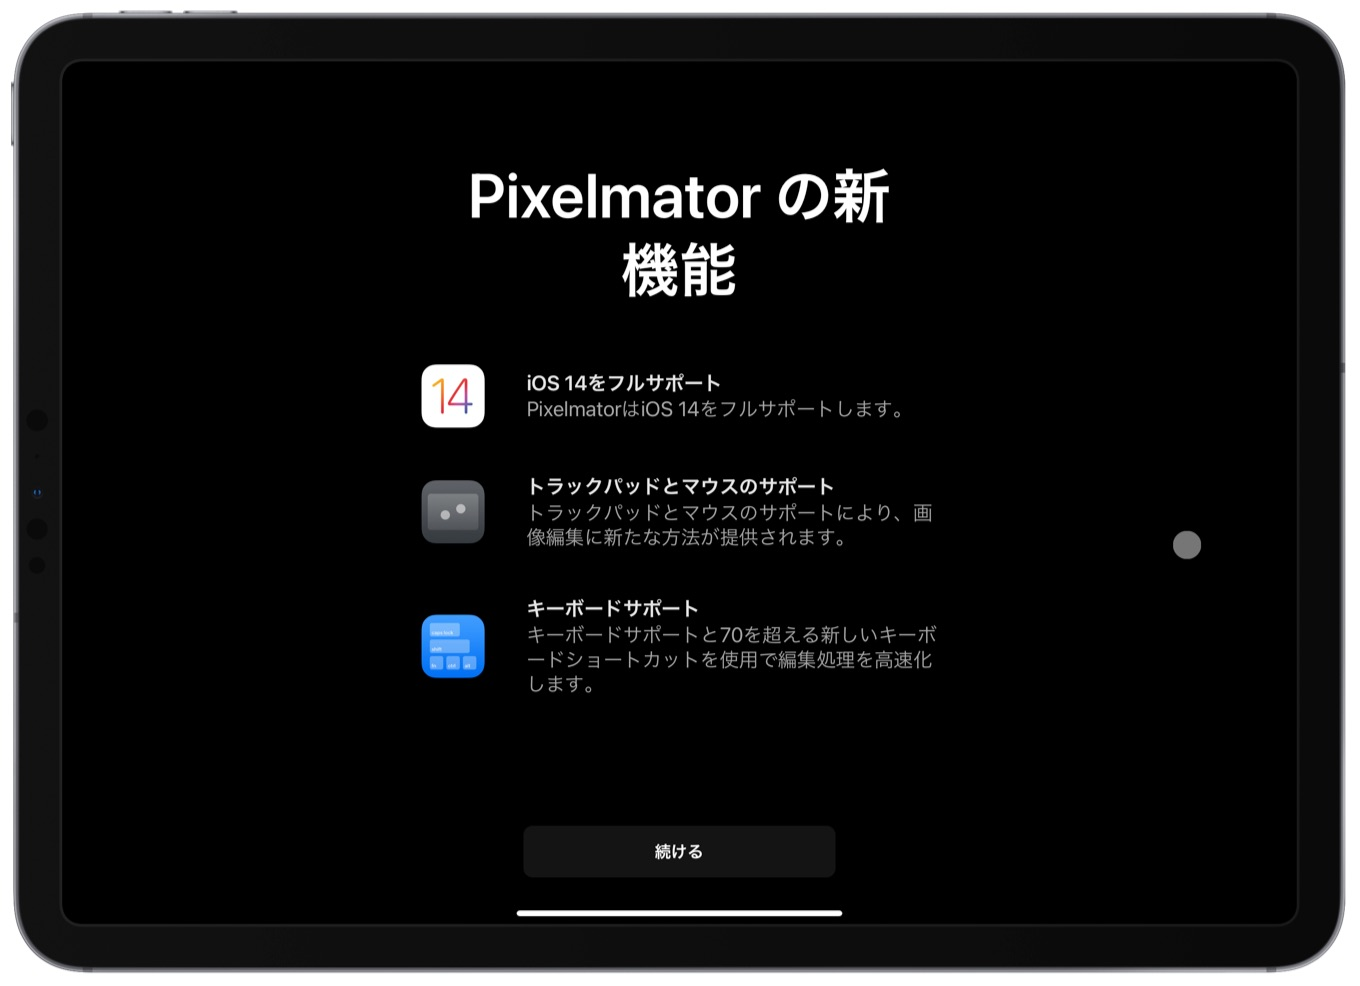 Pixelmator for iPad